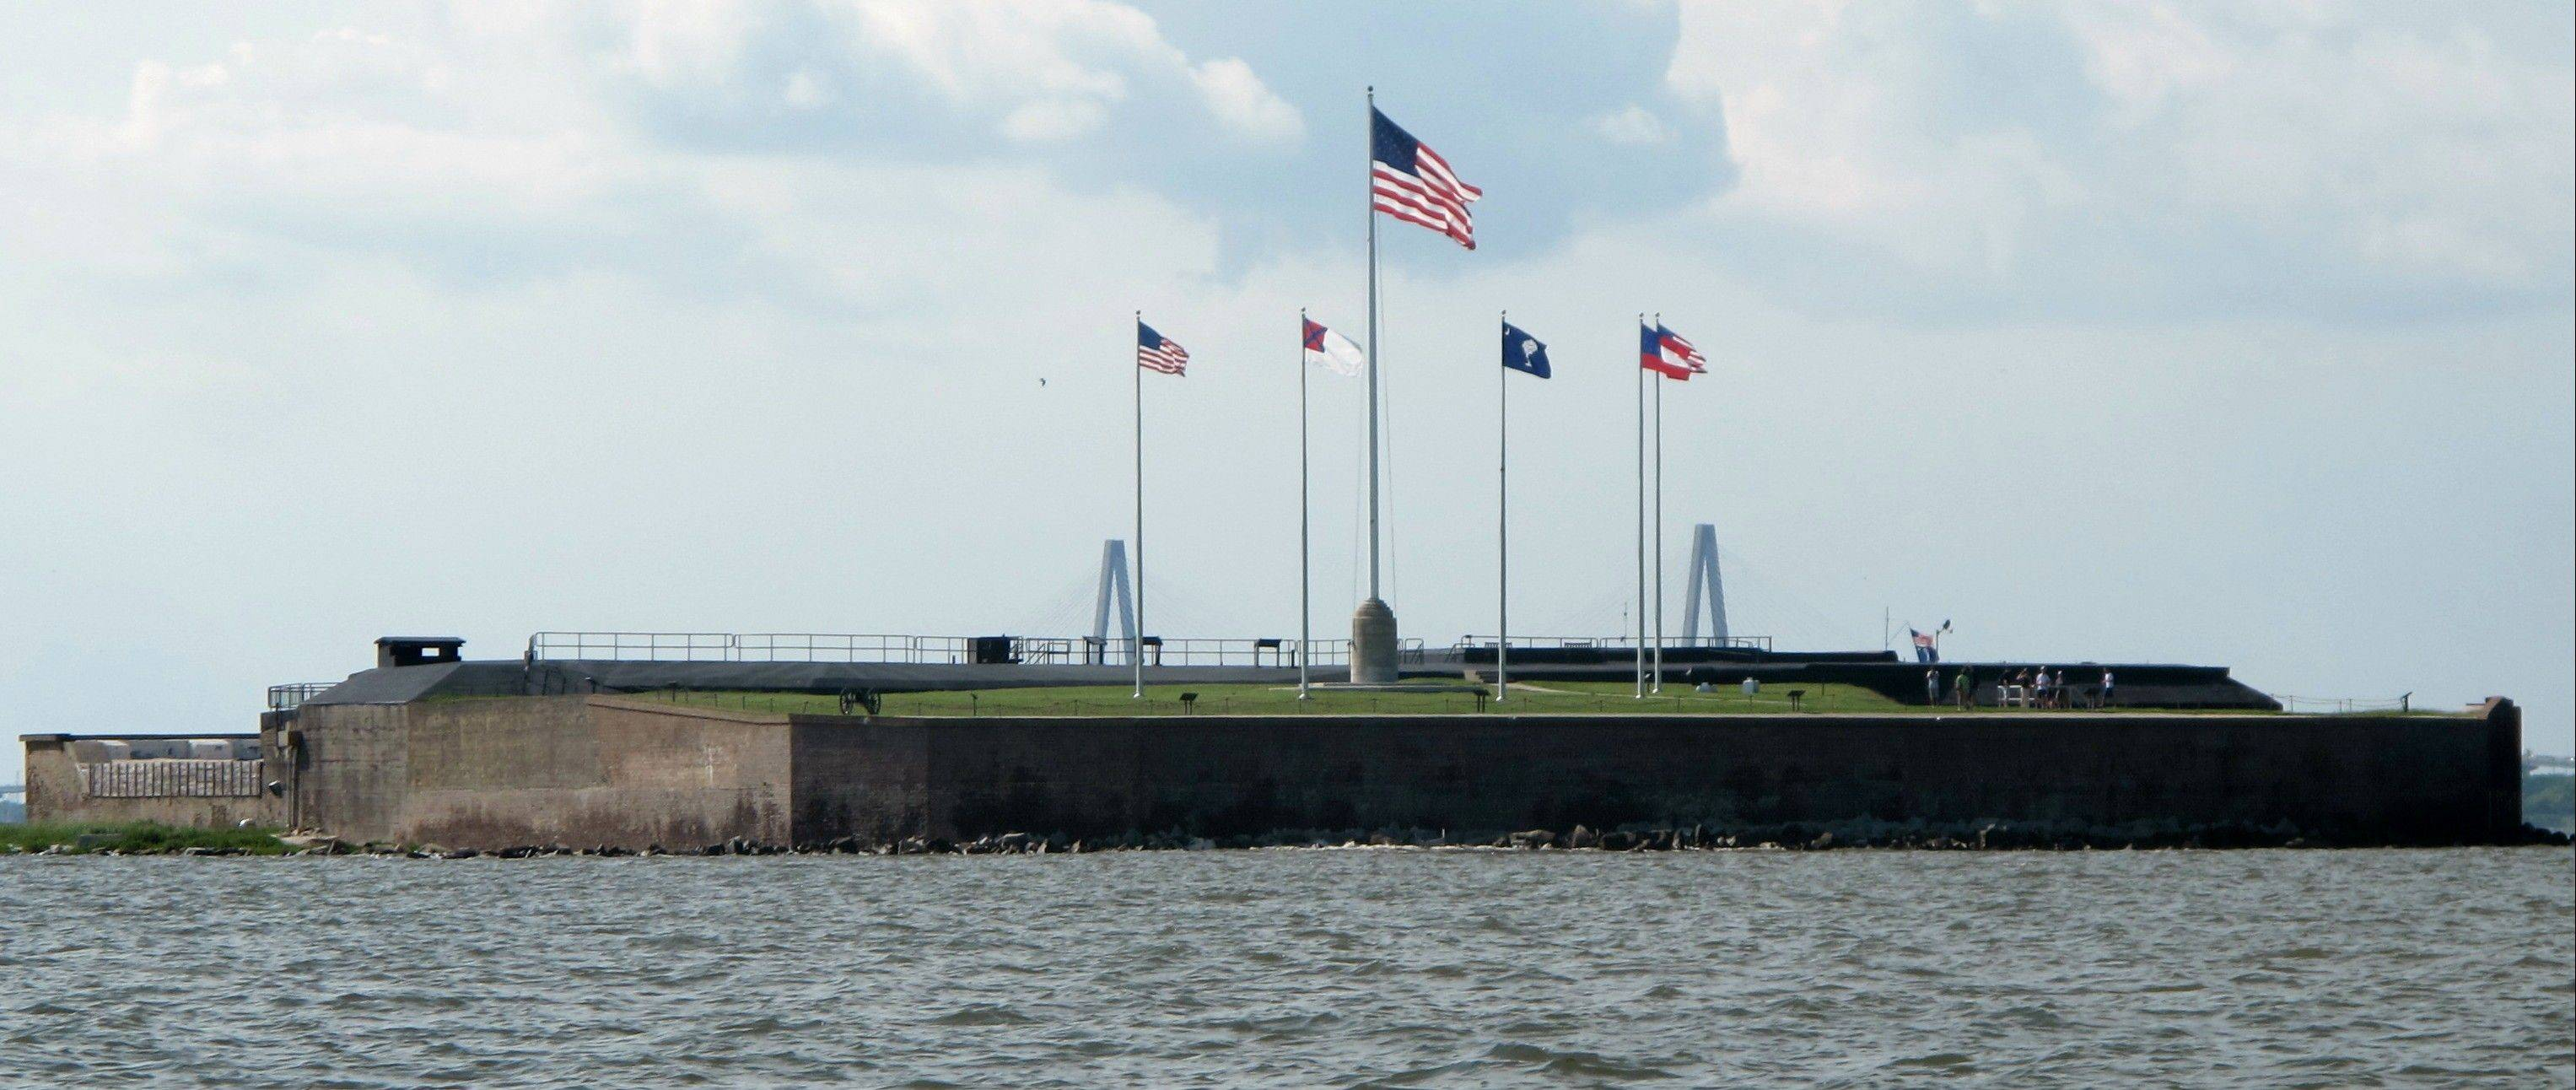 Fort Sumter in the harbor in Charleston, S.C., was where the first shots of the Civil War were fired. The fort is now a museum accessible by a half-hour ferry ride or tour boat.